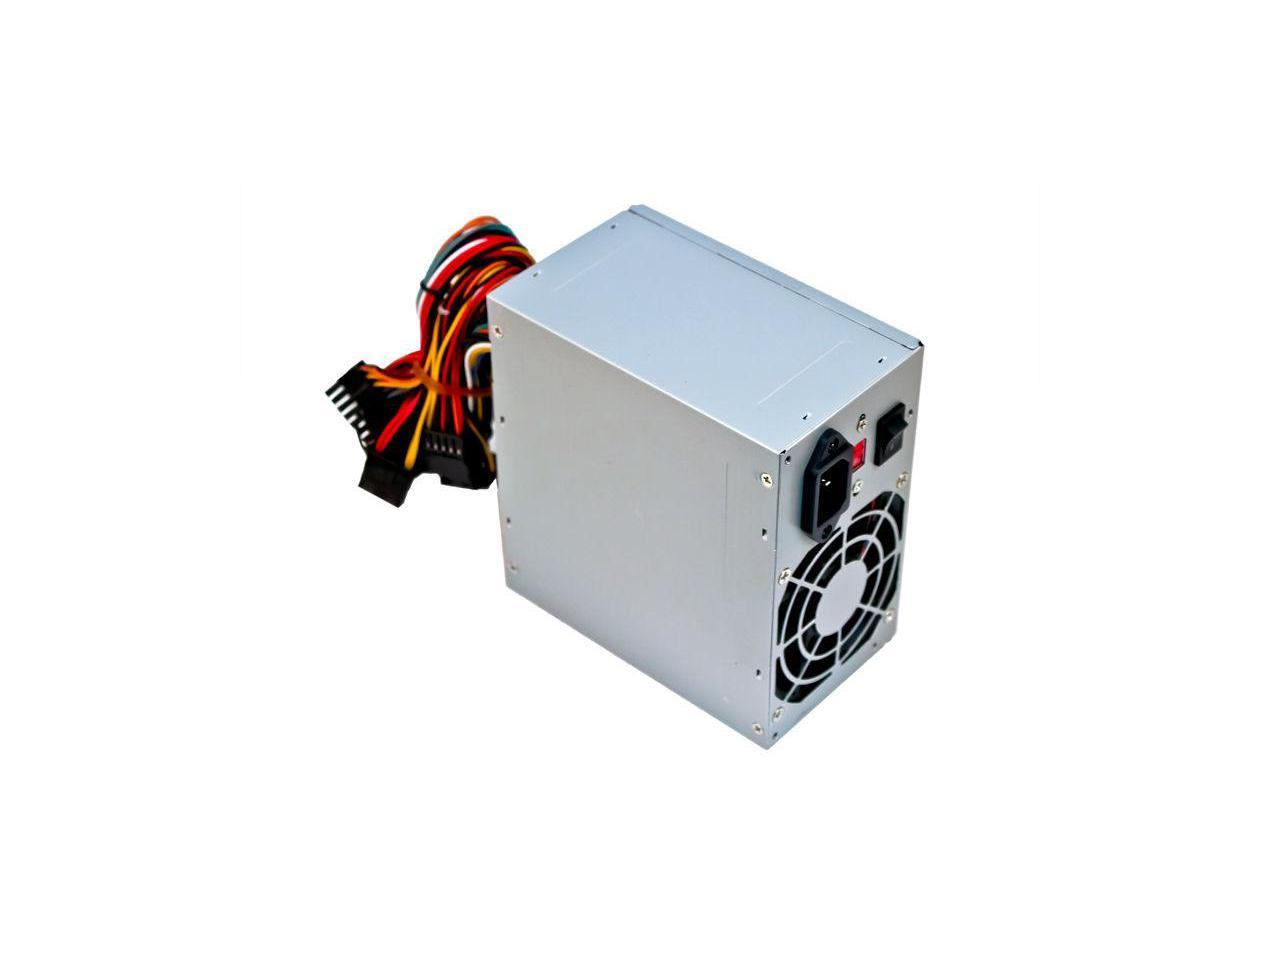 New PC Power Supply Upgrade for eMachines T6534 Desktop Computer